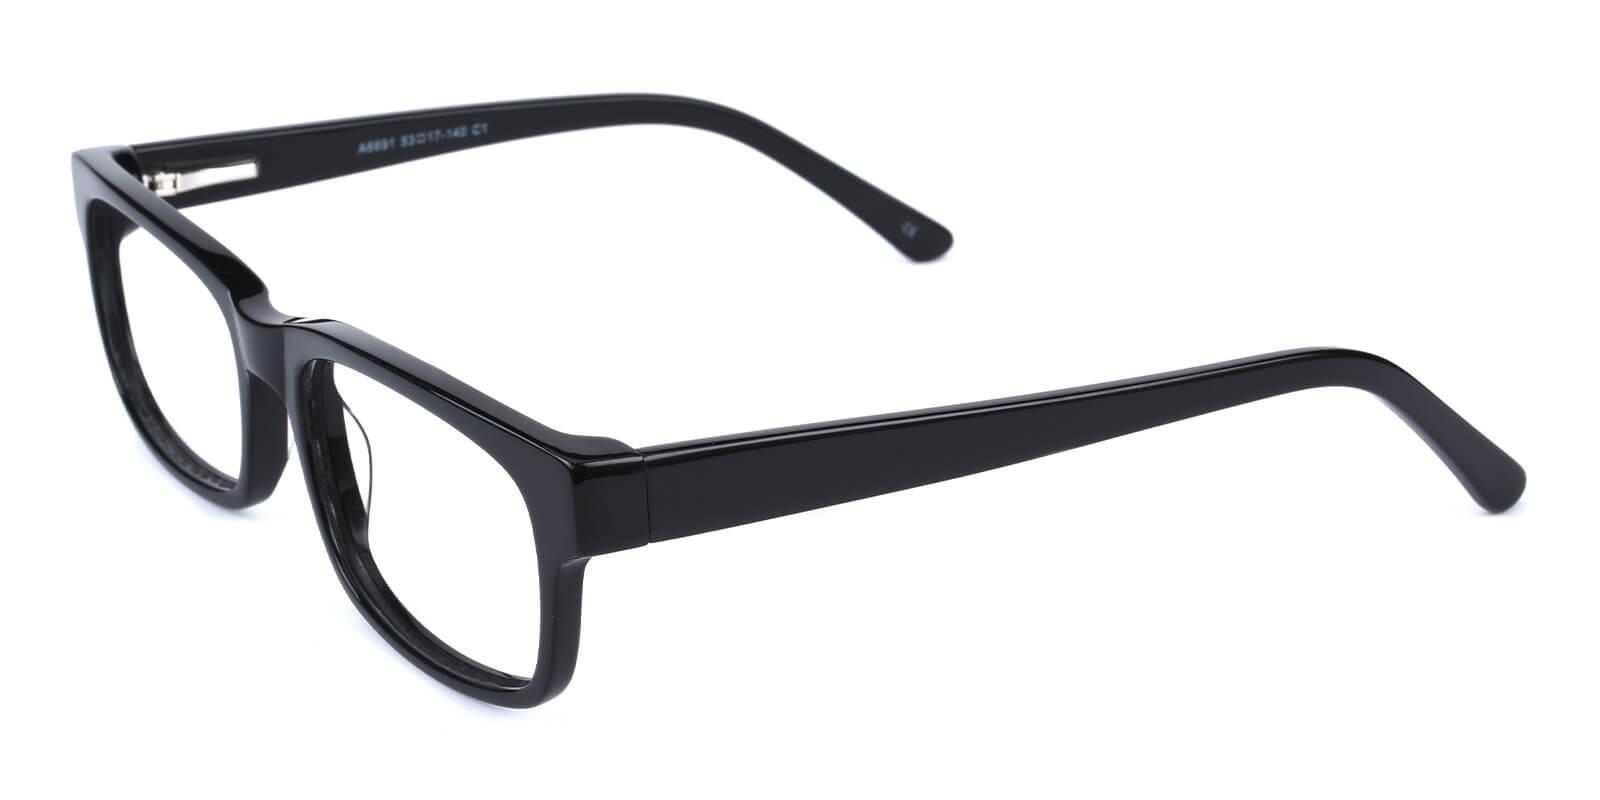 Eware-Black-Rectangle-Acetate-Eyeglasses-detail